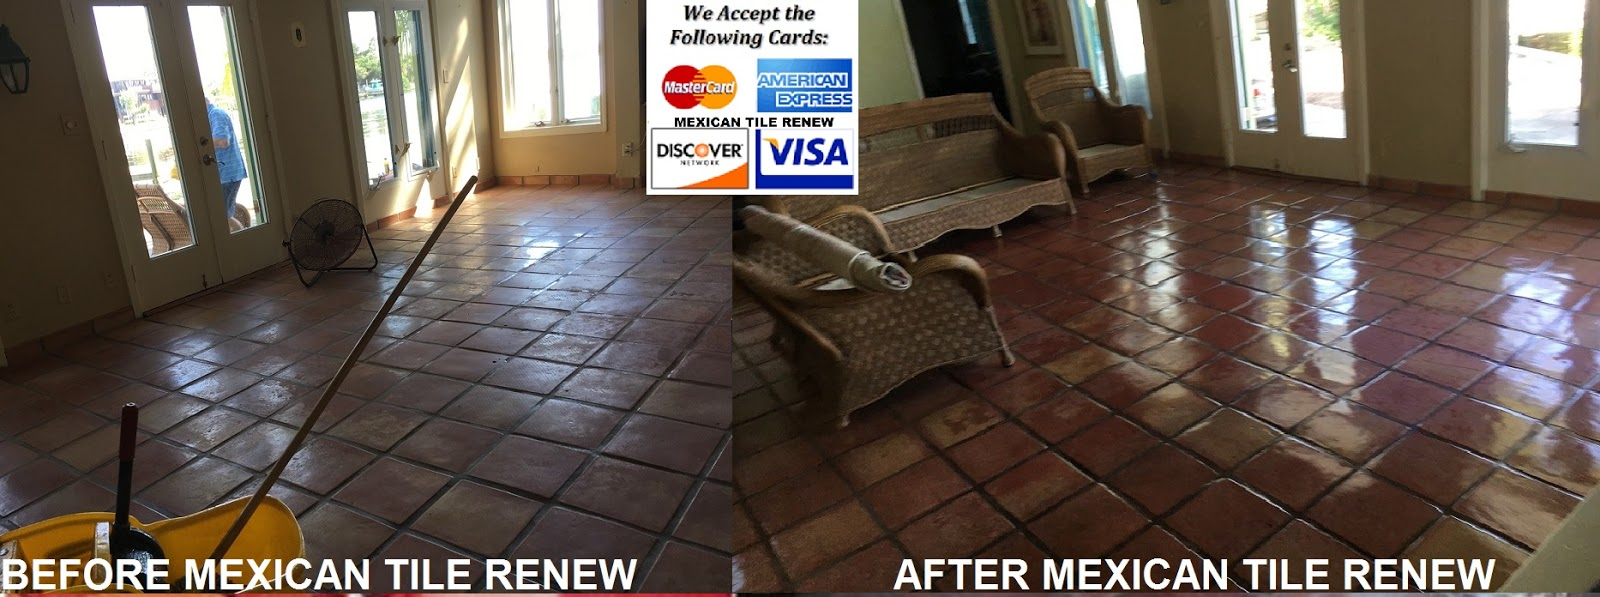 Mexican Tile Renew Project In St Pete Fl At Home On The Bay Where Rubber Pad Stuck To